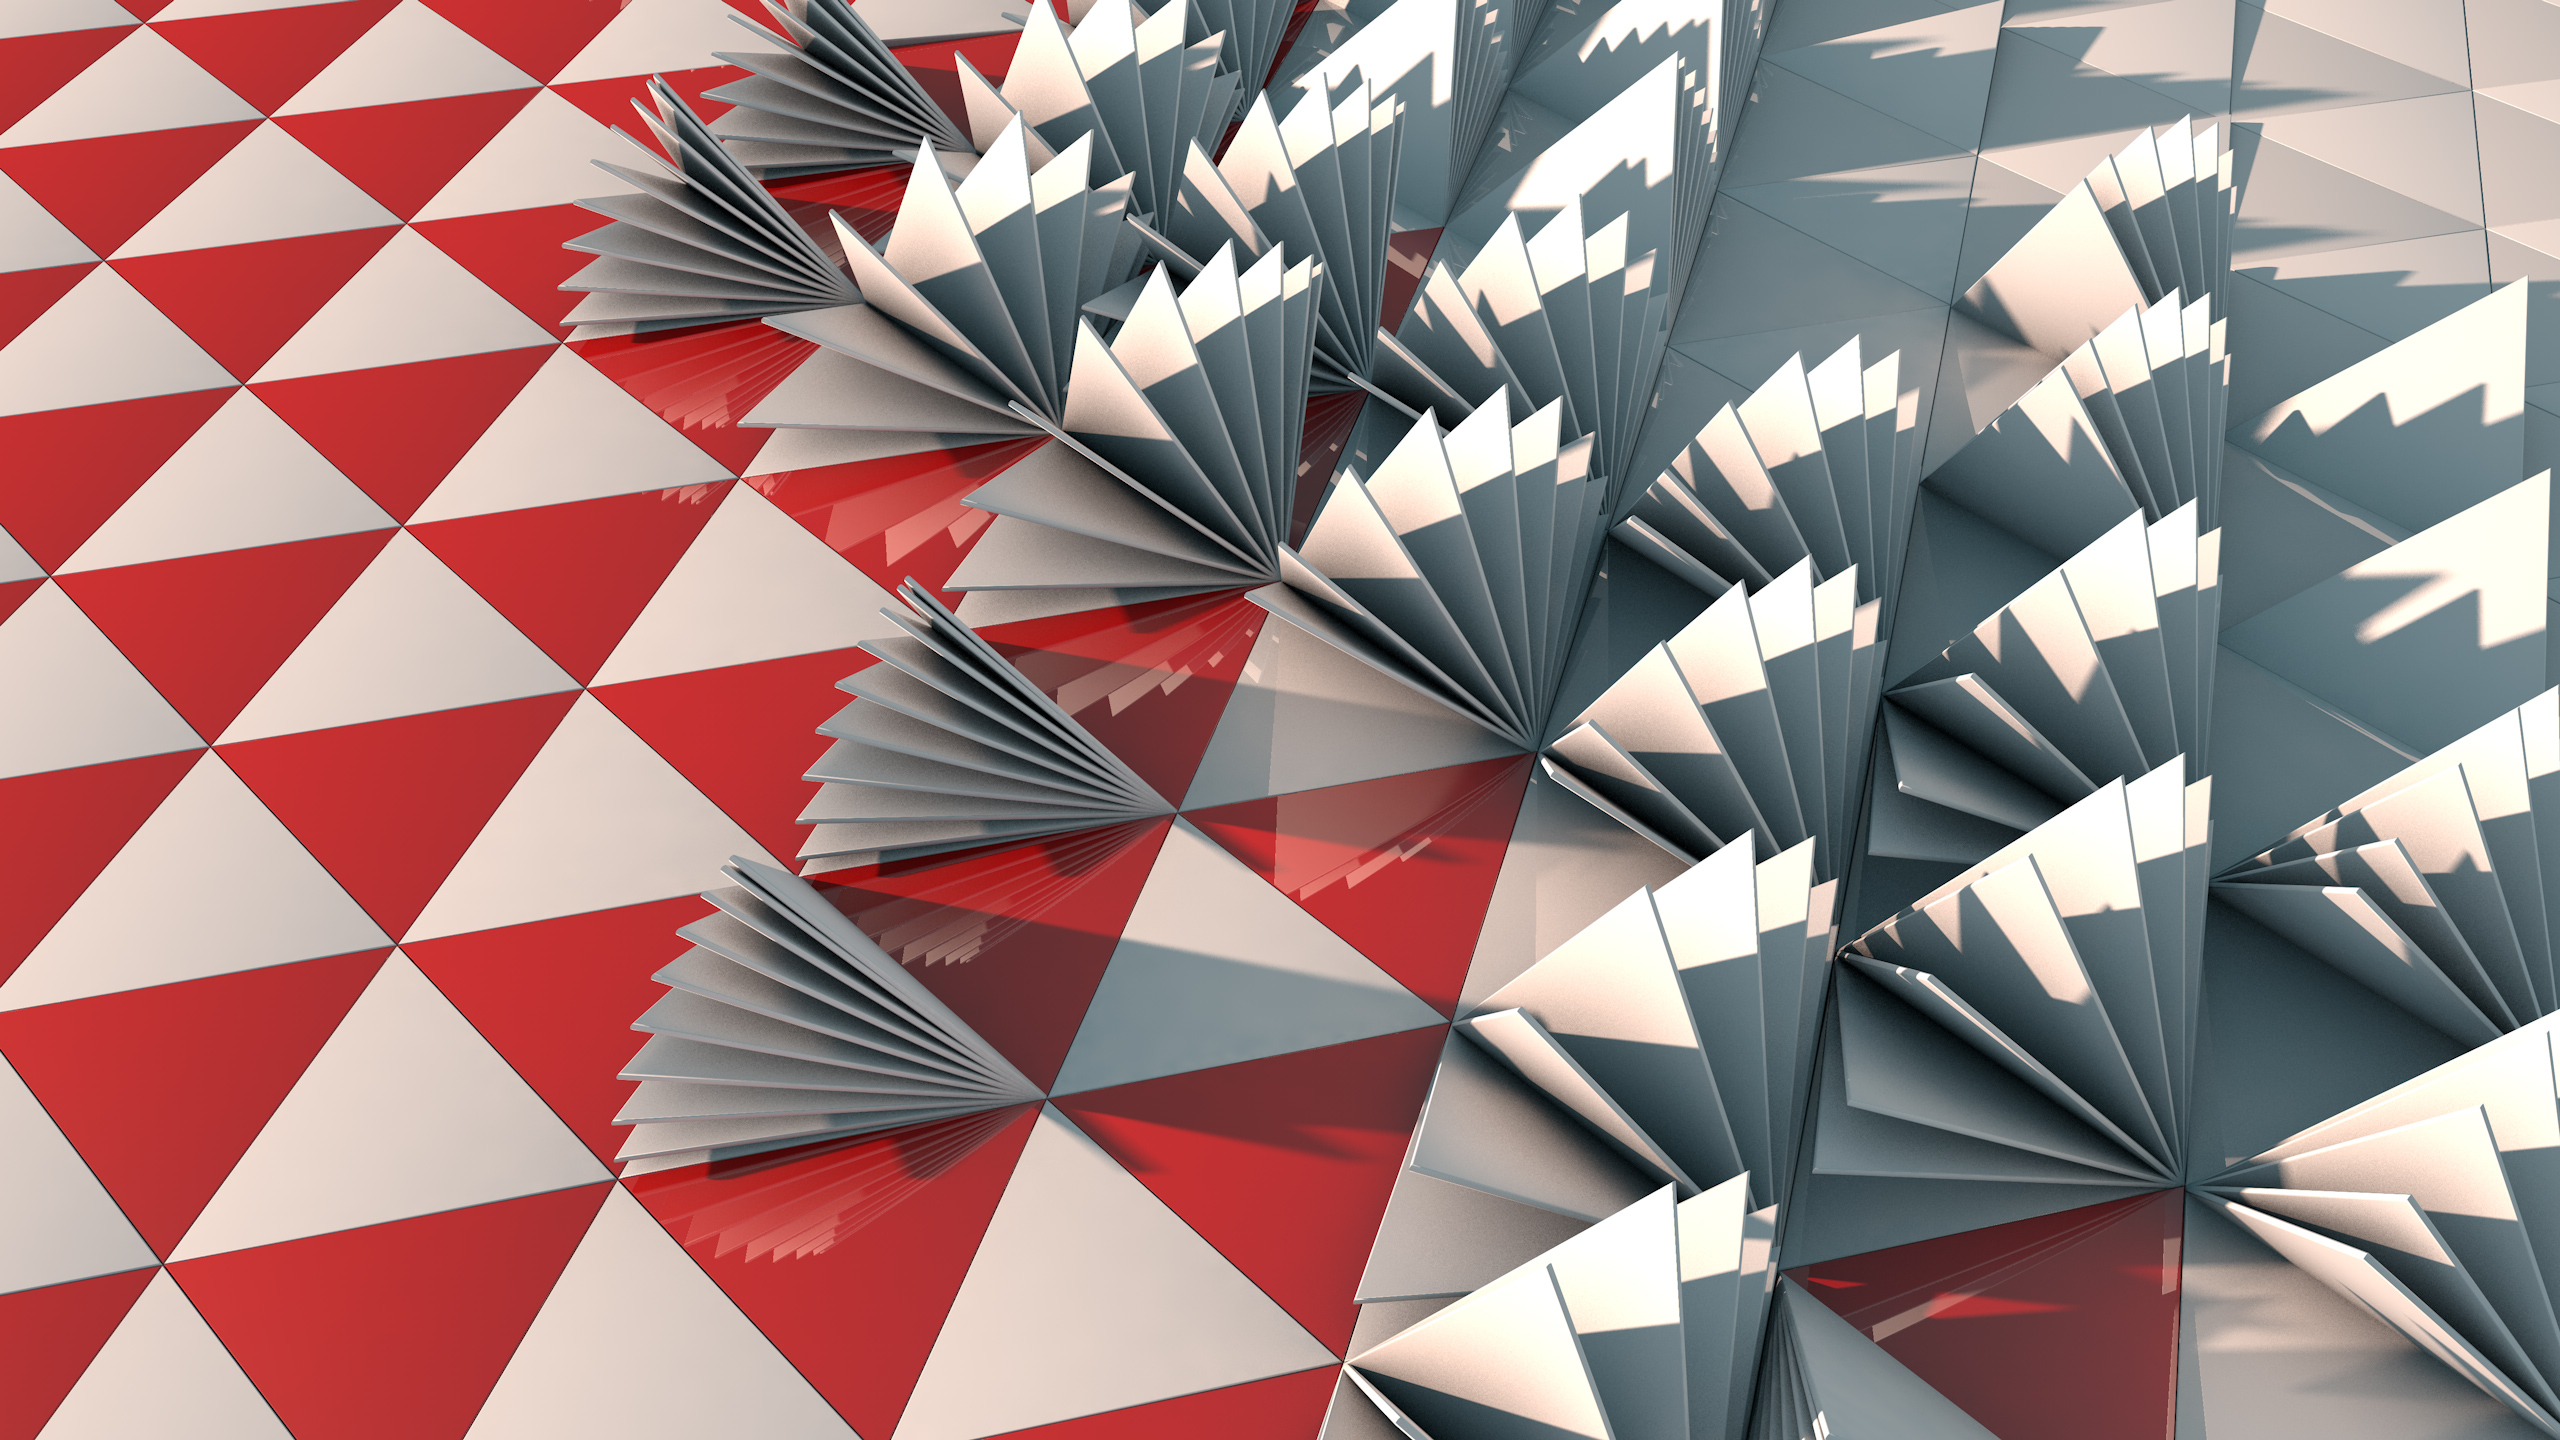 3D TRIANGLE RED ABSTRACT RED XJ WALLPAPER